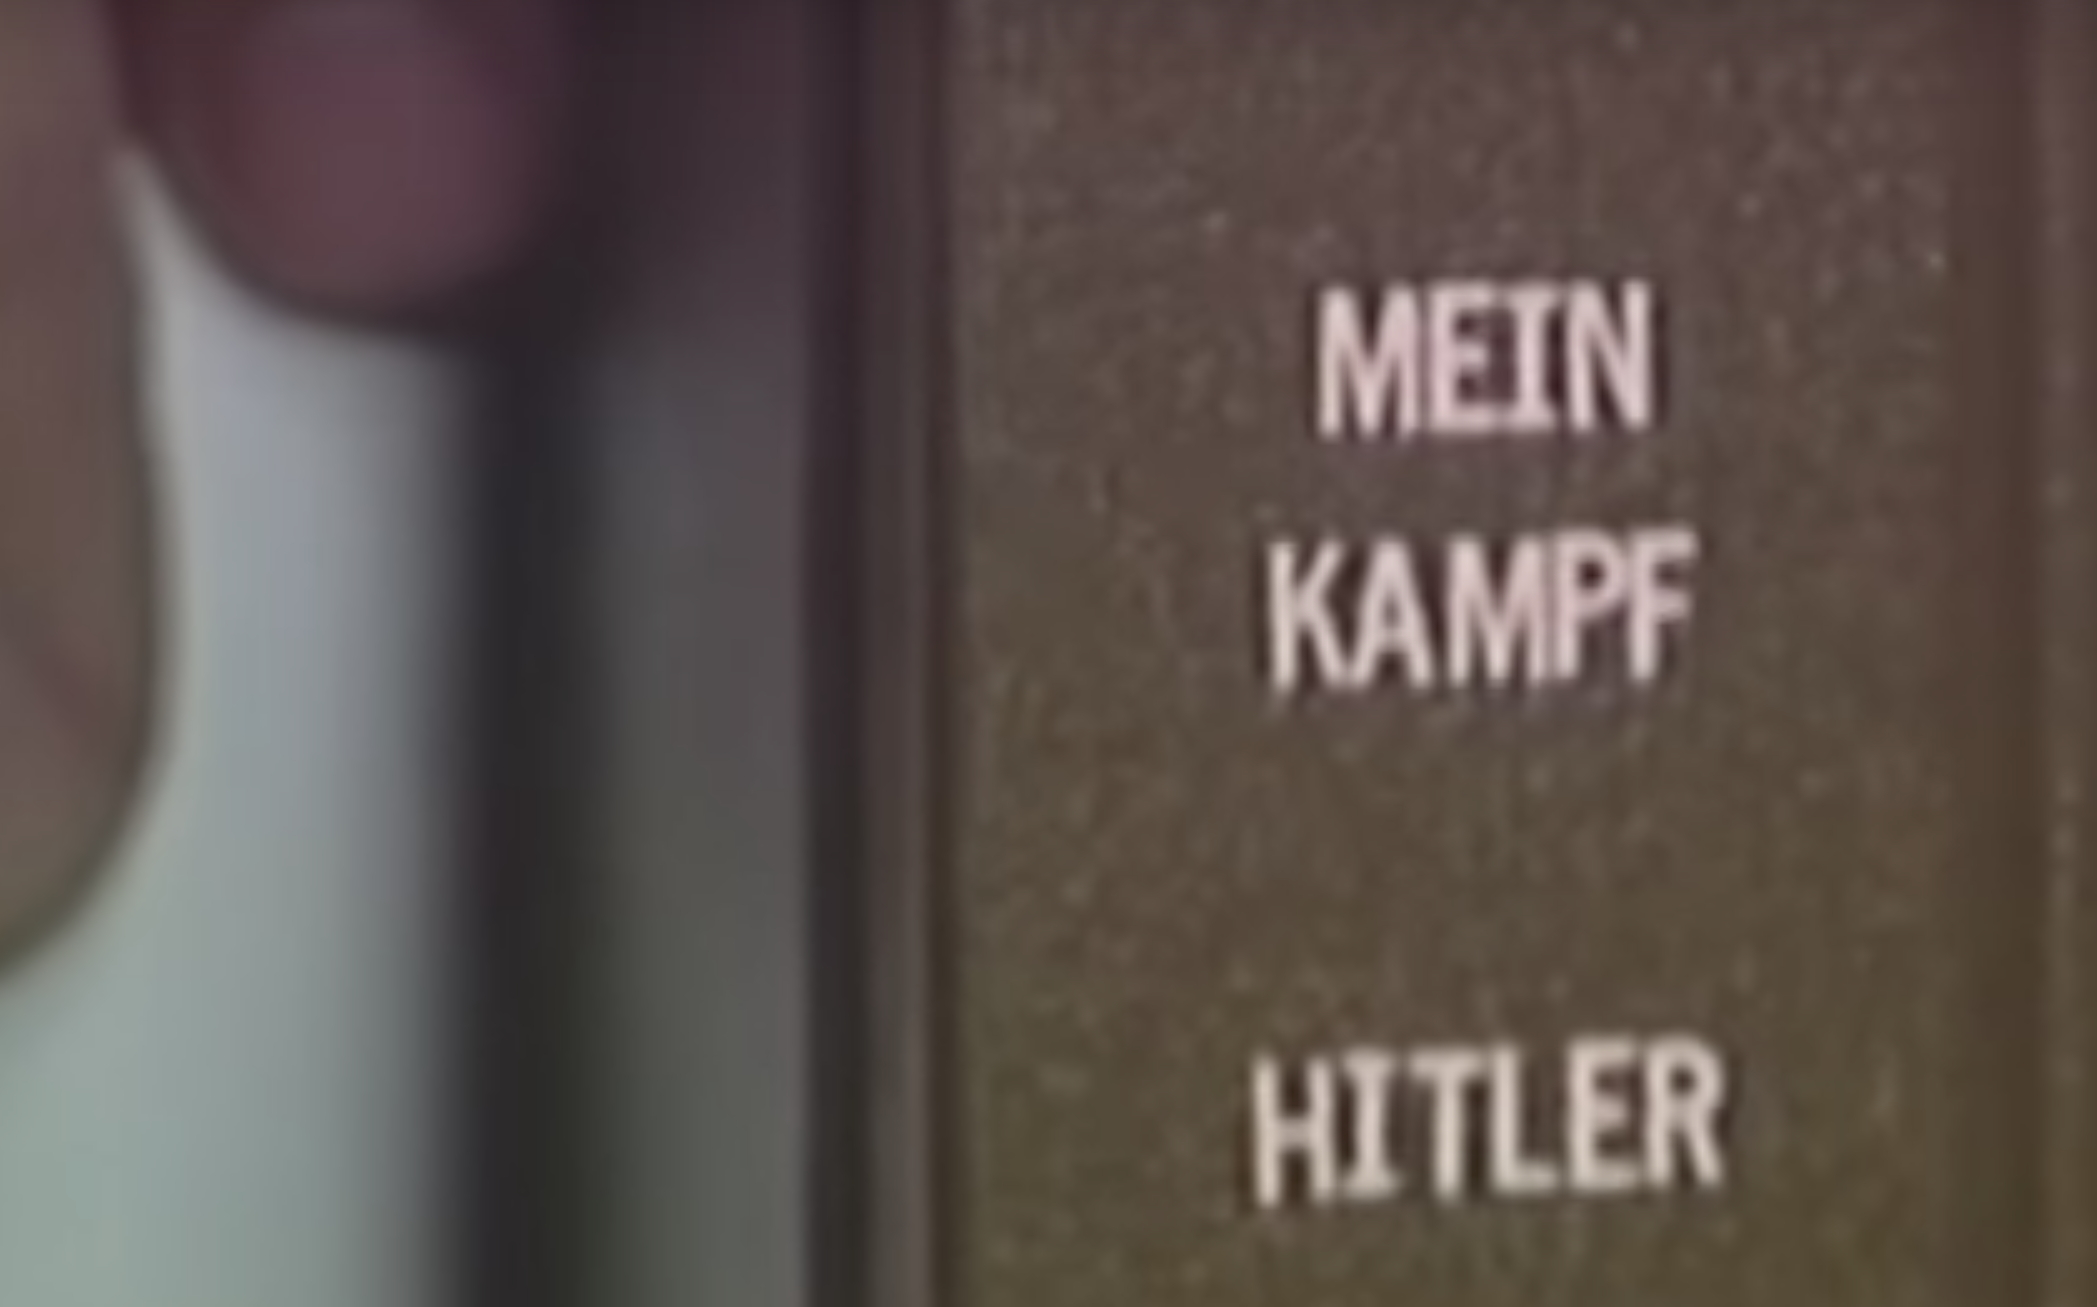 Photo of Bob reading Hillary Clinton's views in Hitler's Mein Kampf